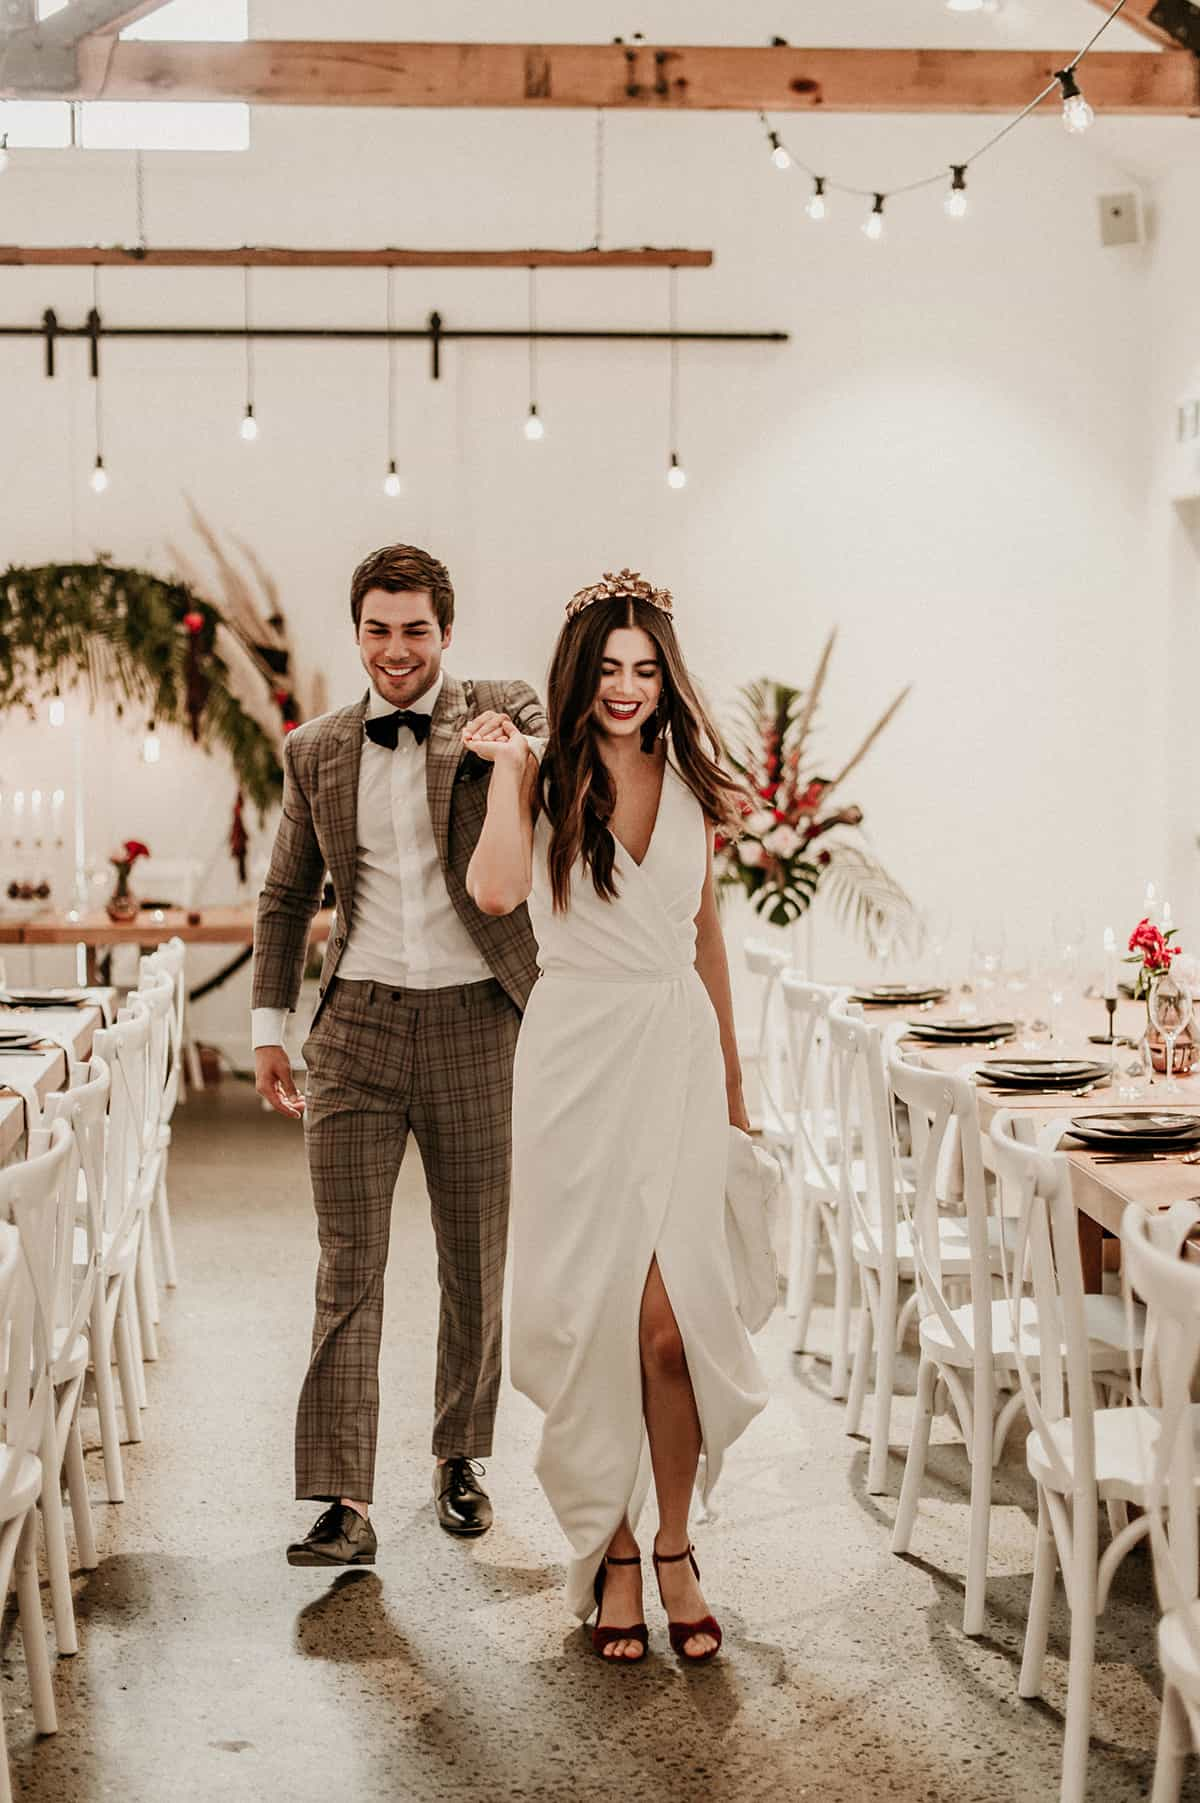 styled shoot at Summergrove